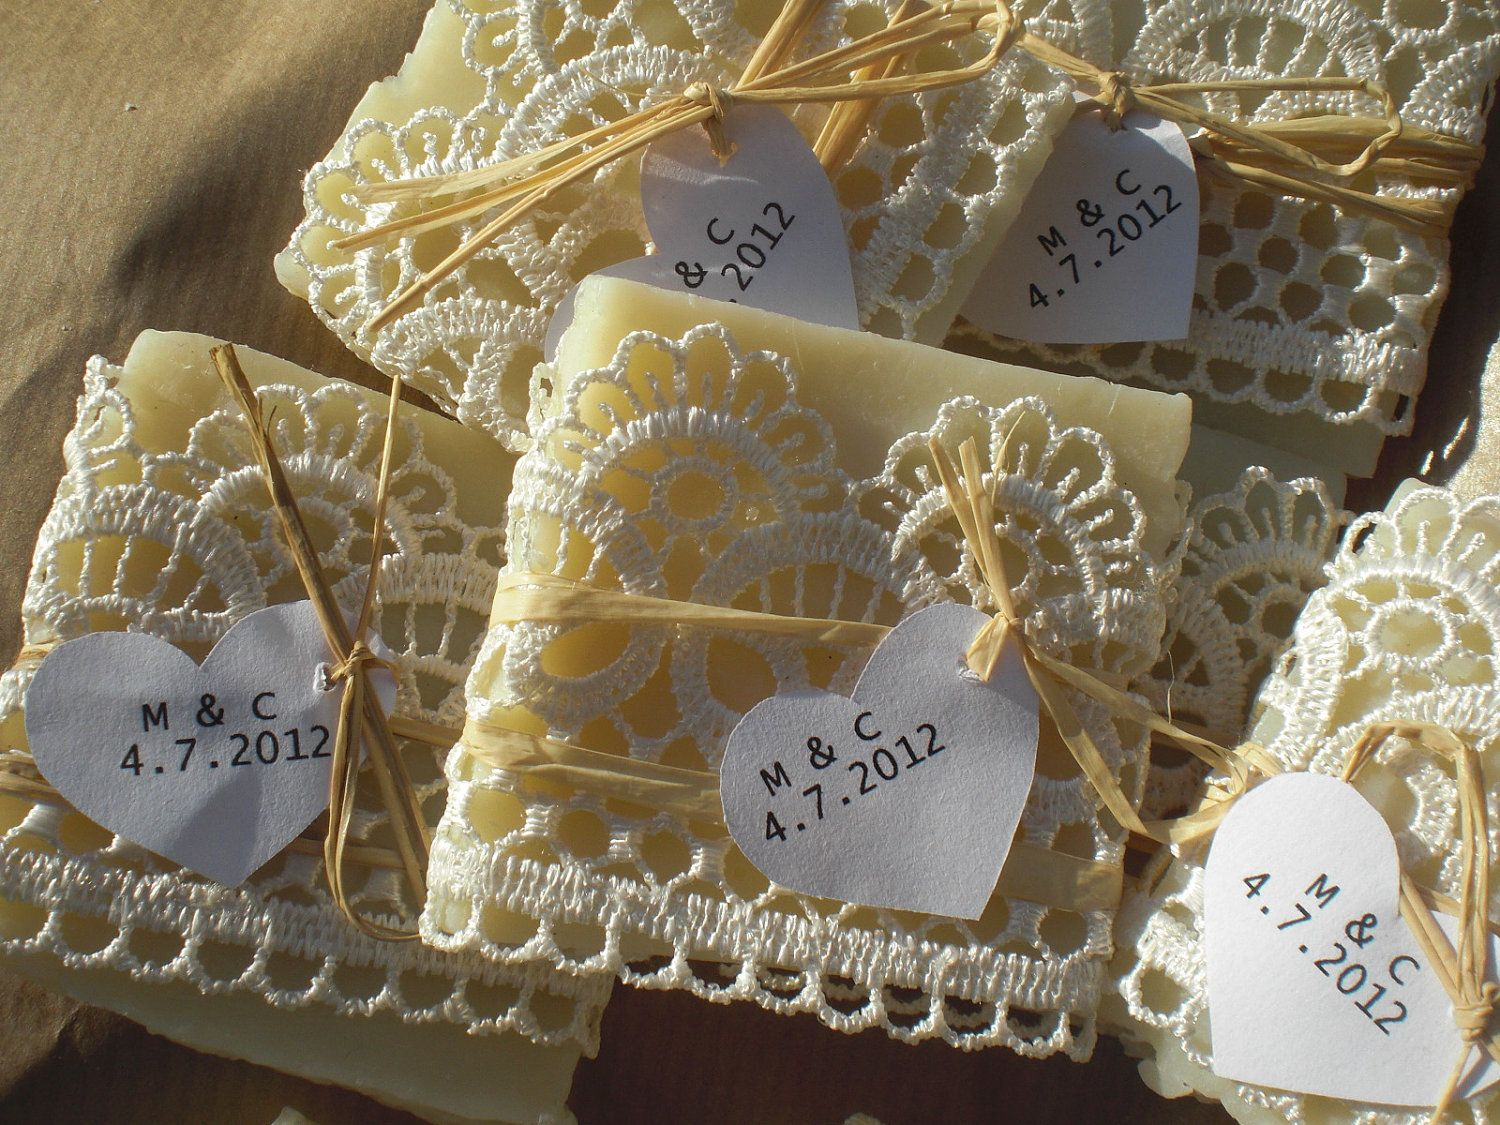 10 Mixed Wedding Favor Samples All Natural Soaps With Free Tags